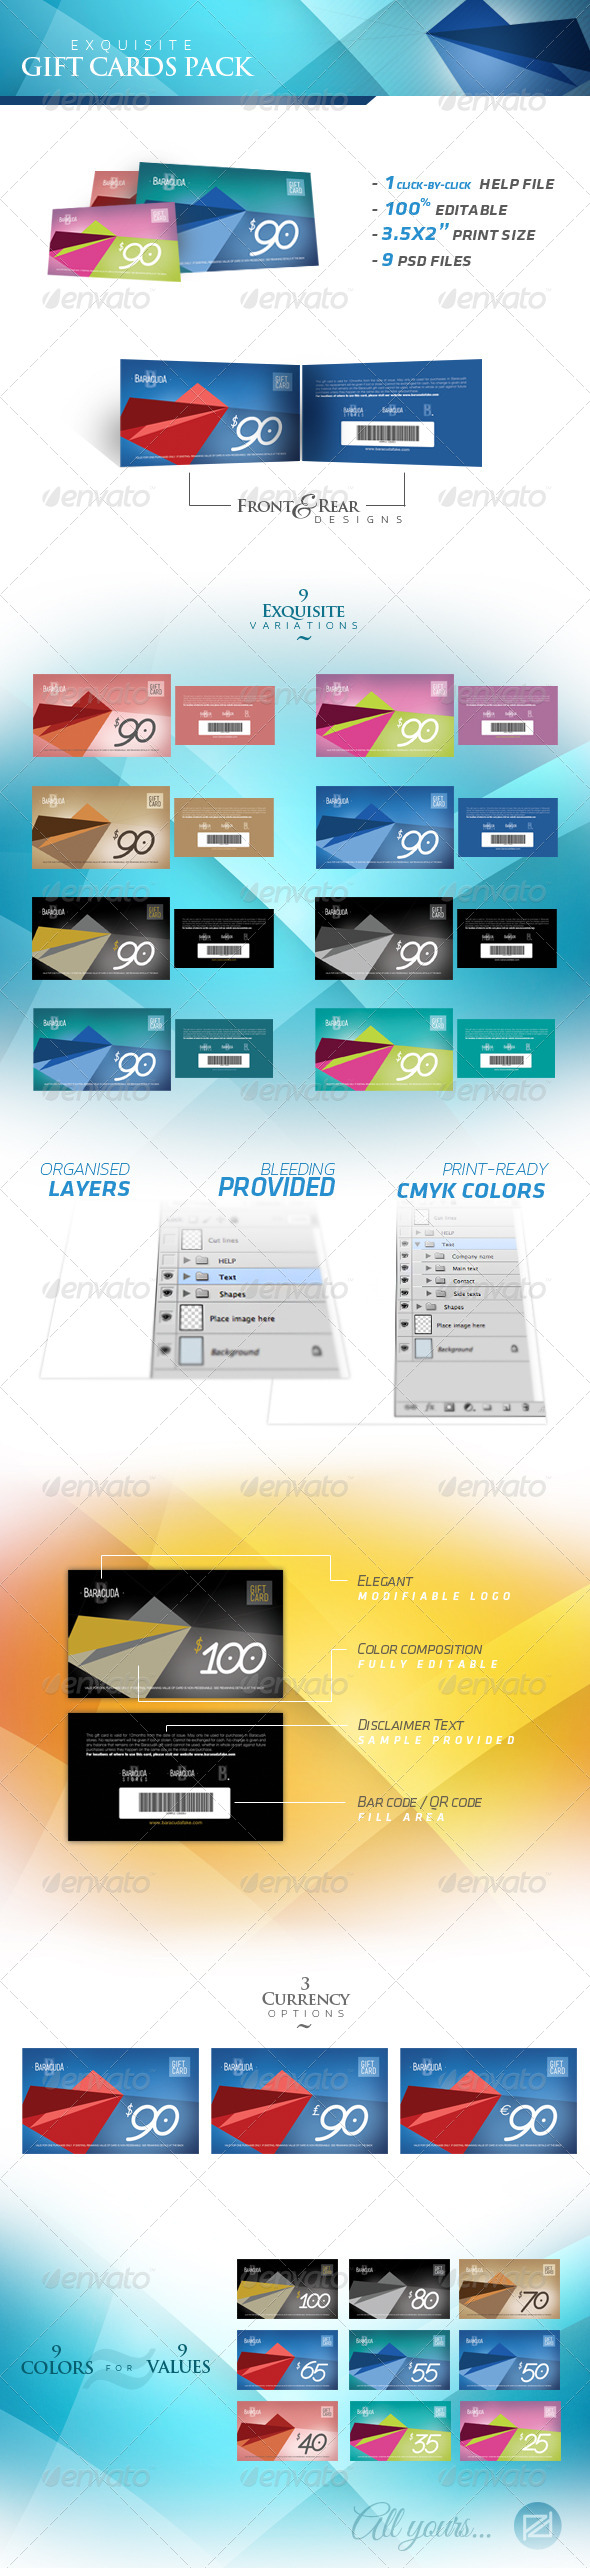 GraphicRiver Exquisite Gift Cards Pack 4071299